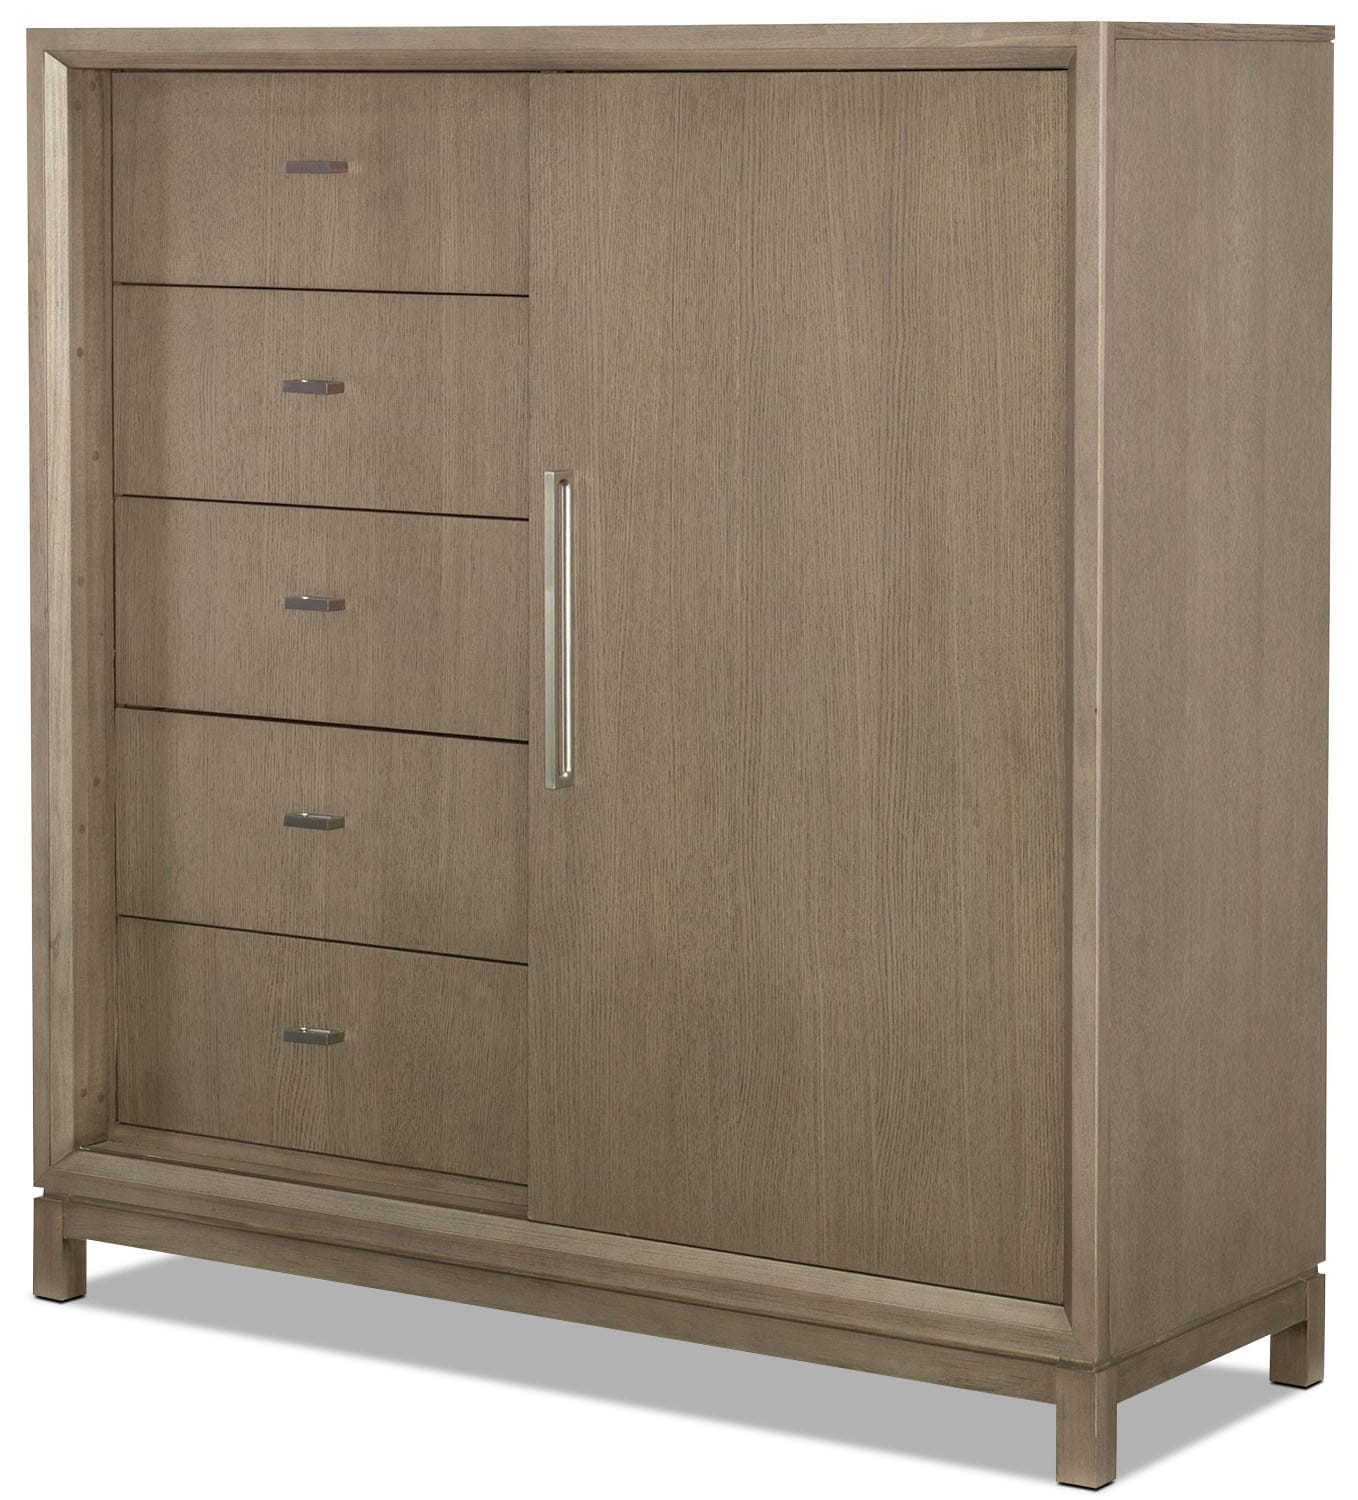 Rachael Ray Highline Sliding Door Chest - Greige